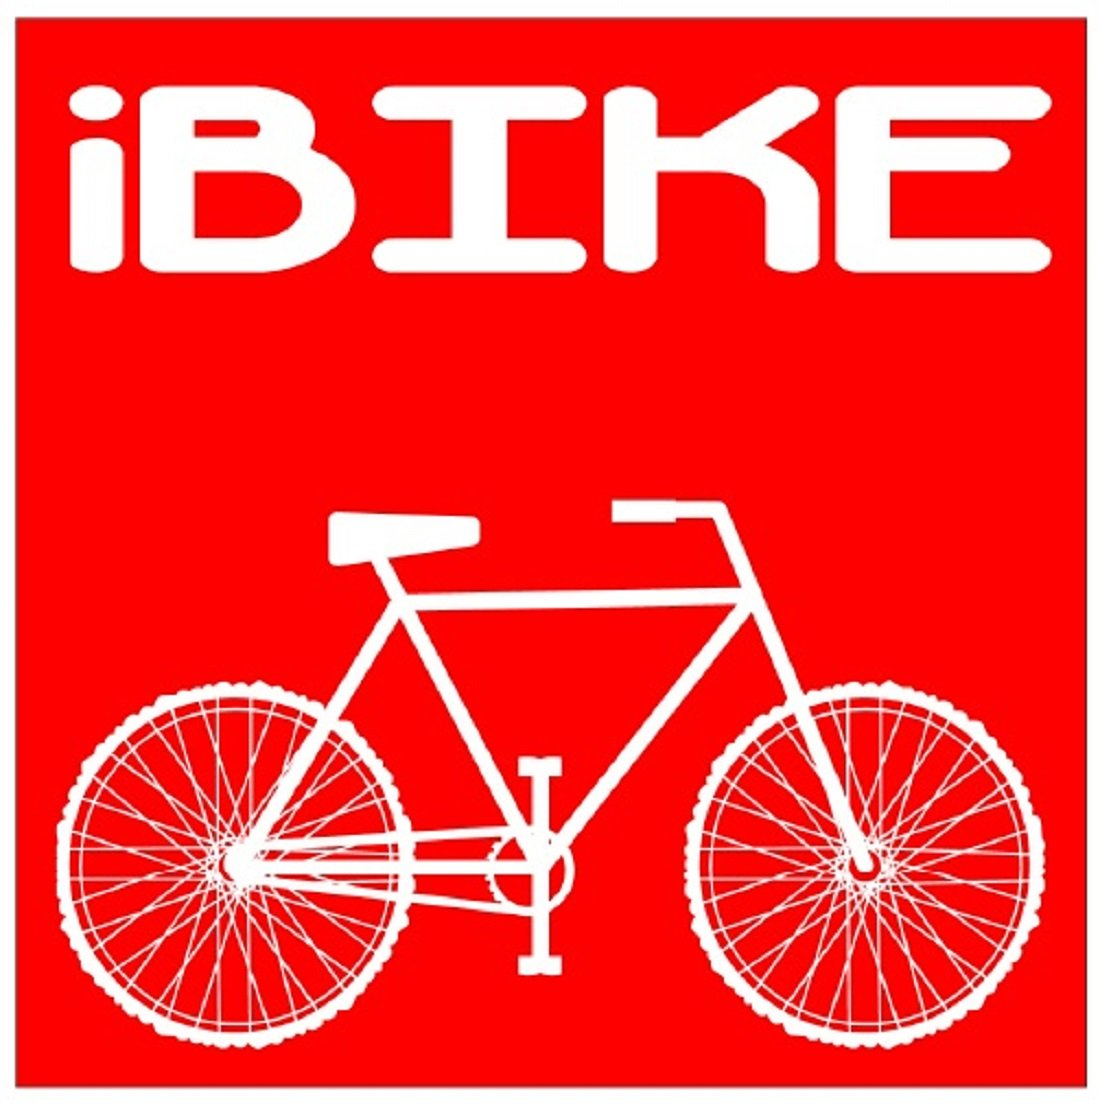 U s custom stickers ibike bicycle square sticker red 5 inch